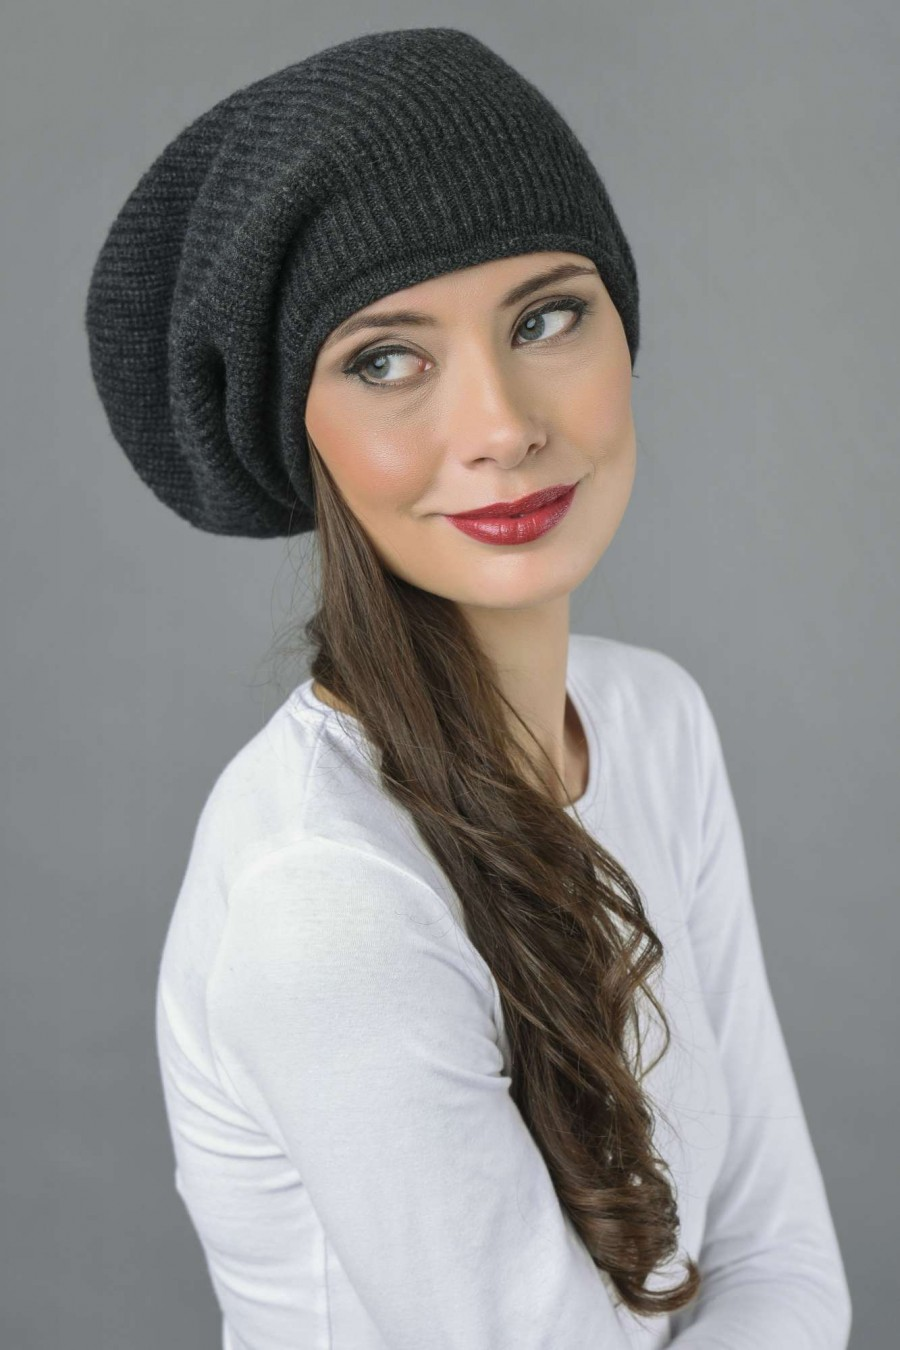 249677750f4 Pure Cashmere Ribbed Knitted Slouchy Beanie Hat in Charcoal Grey ...